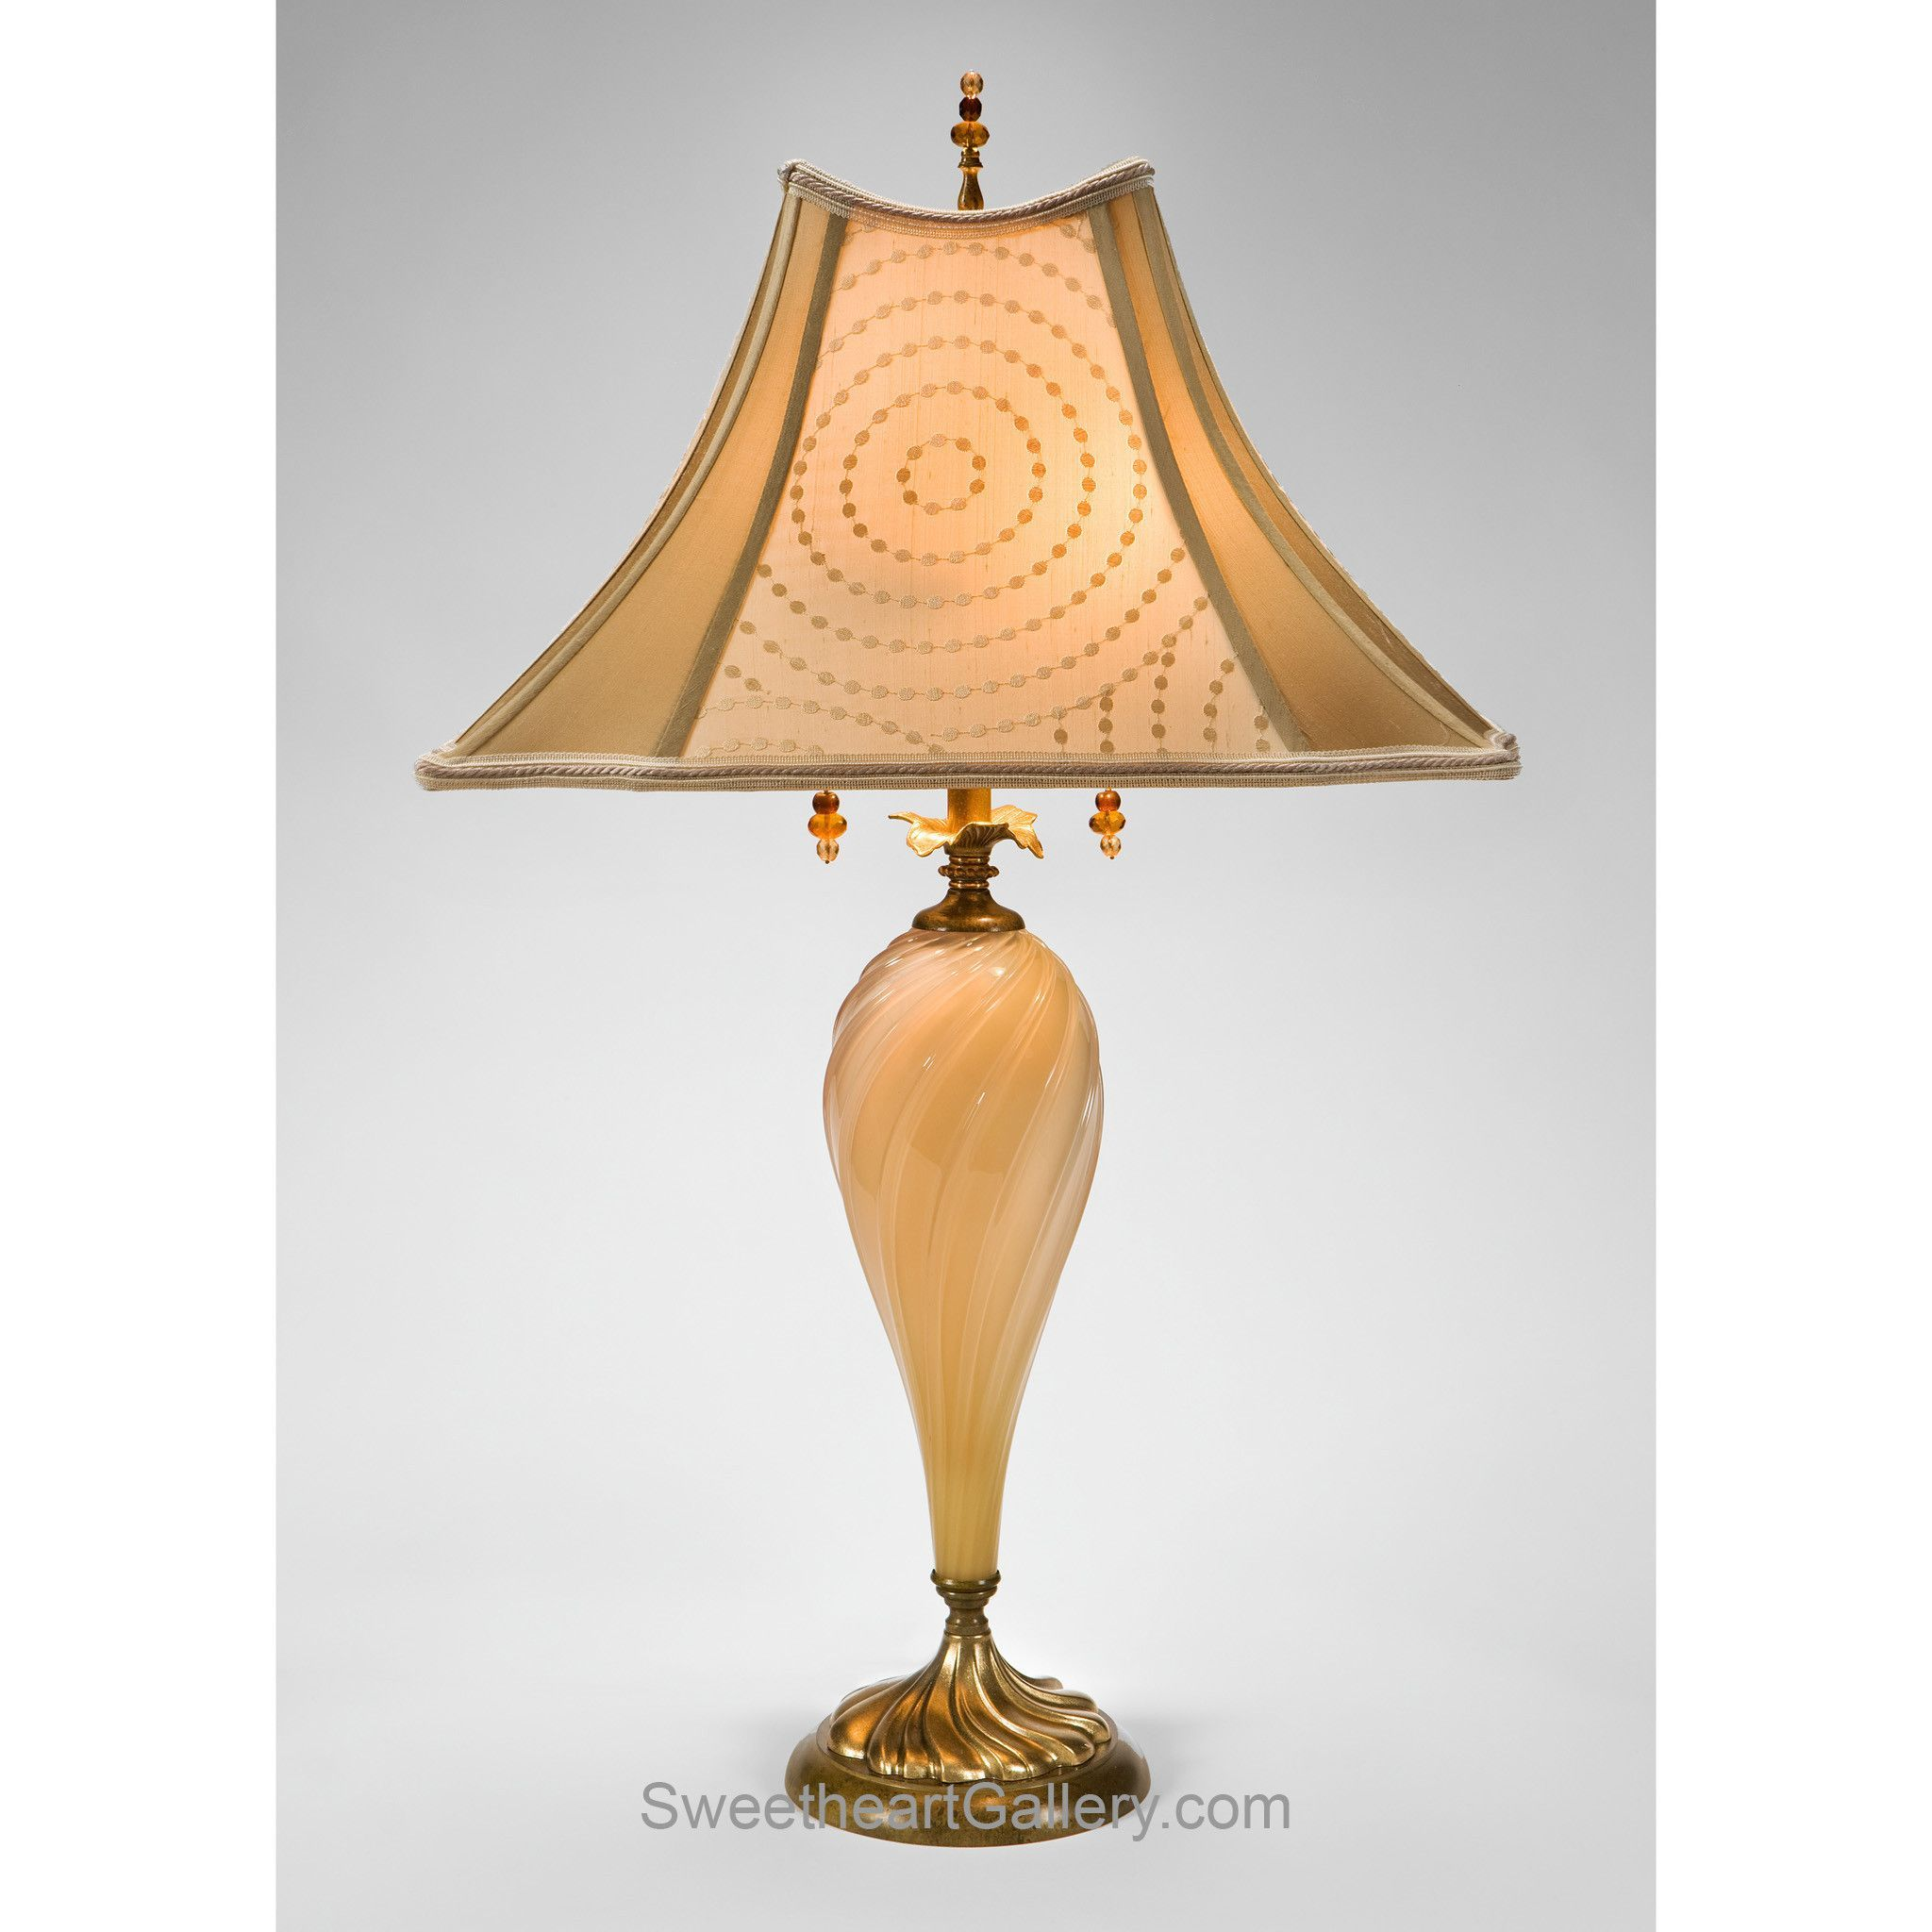 Virginia table lamp 62z68 by kinzig design colors creamy glass virginia table lamp 62z68 by kinzig design colors creamy glass beige cream geotapseo Image collections